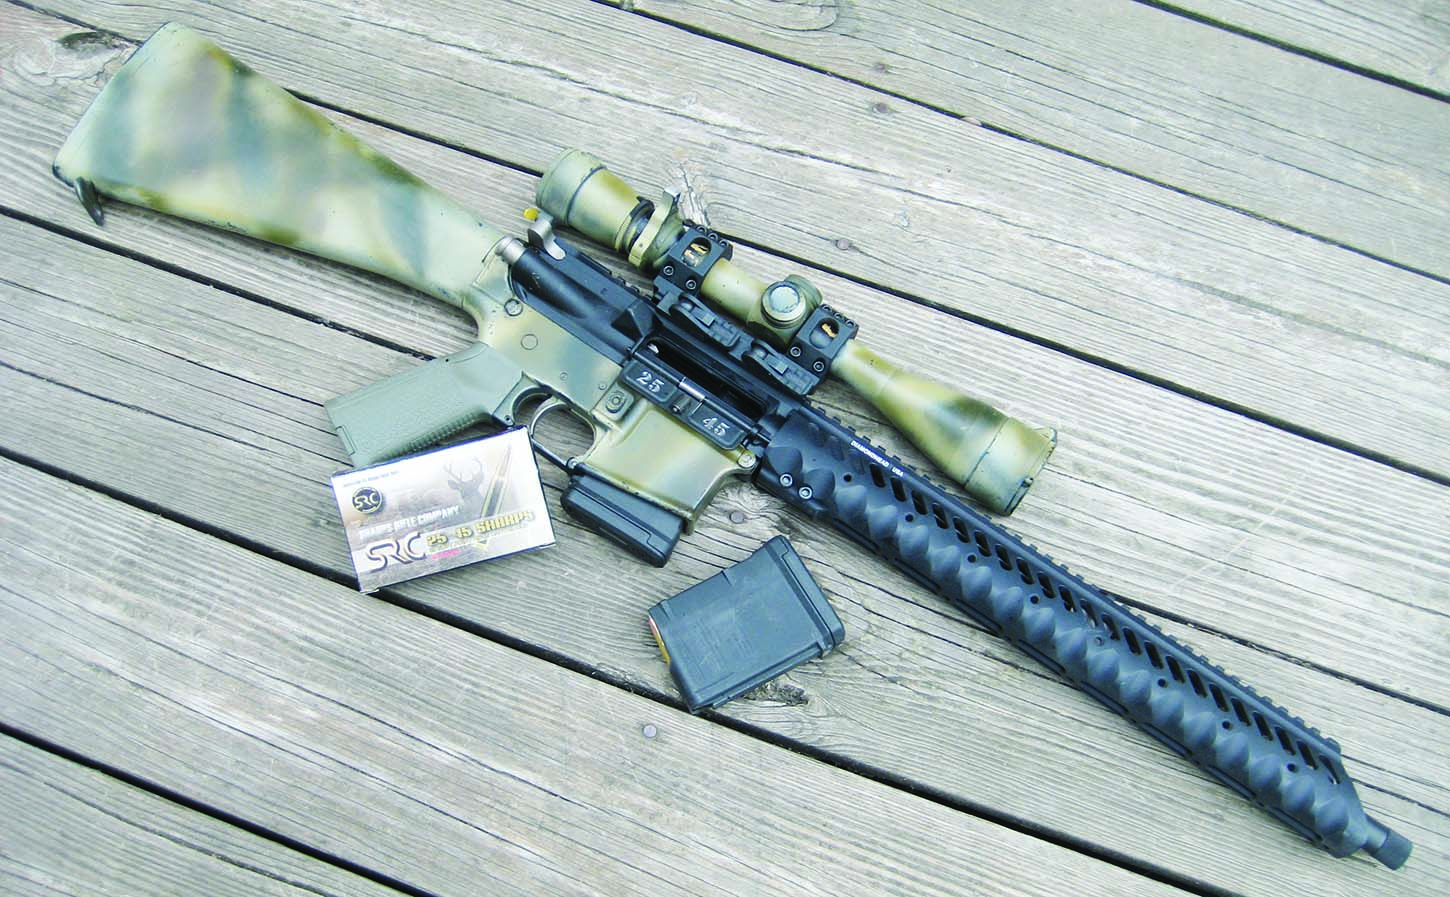 The SRC 25-45 upper receiver was tested on a Colt lower with a 4-14 Leupold telescope mounted in an American Defense QD mount. Note the clean, snag free lines of the Diamondhead USA free float forearm and screw-on muzzle cap.